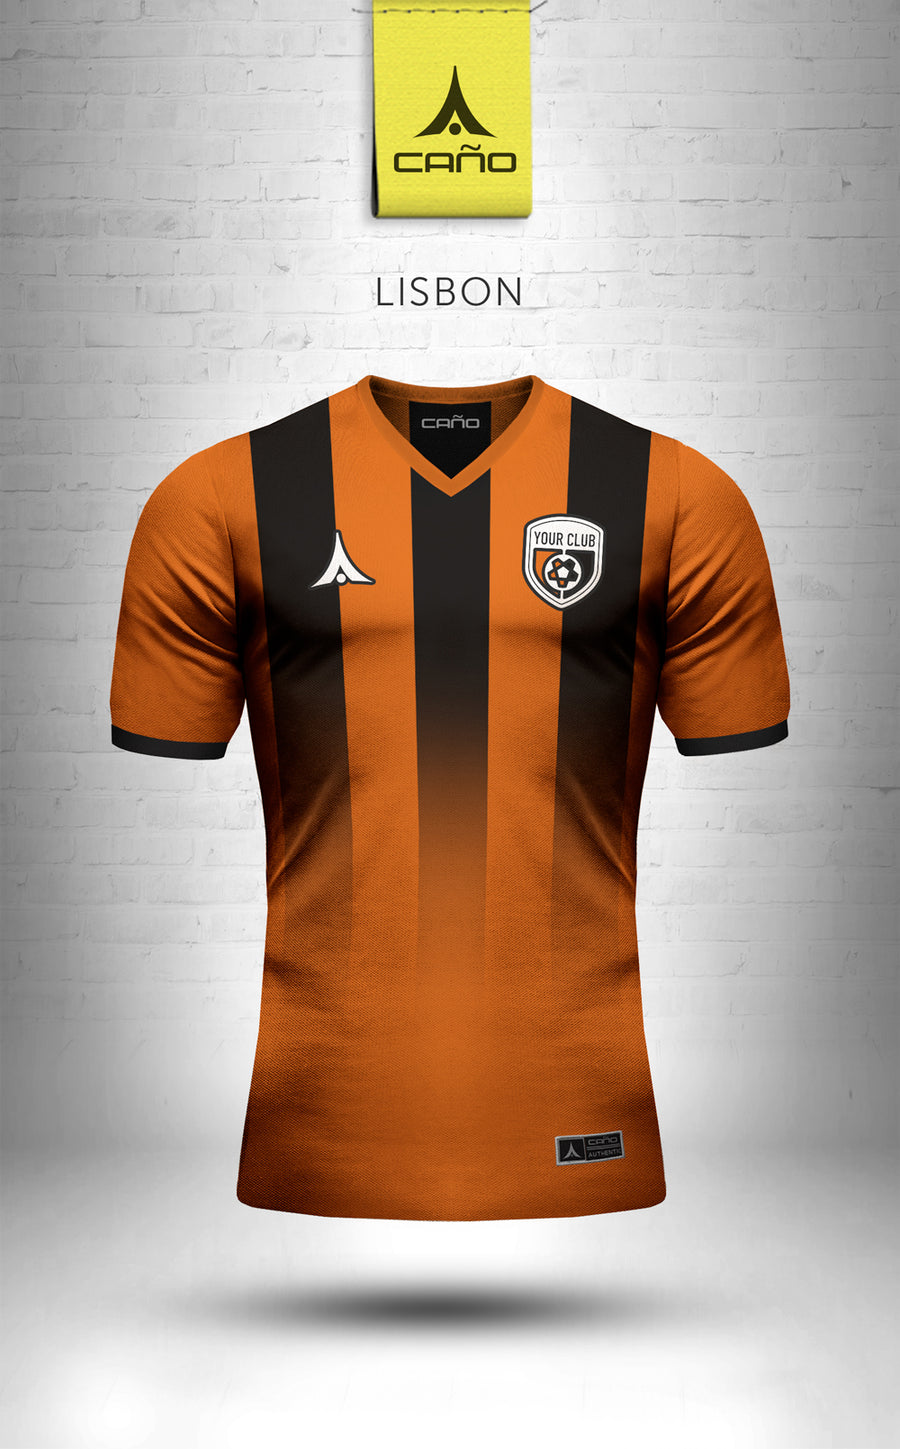 Lisbon in orange/black